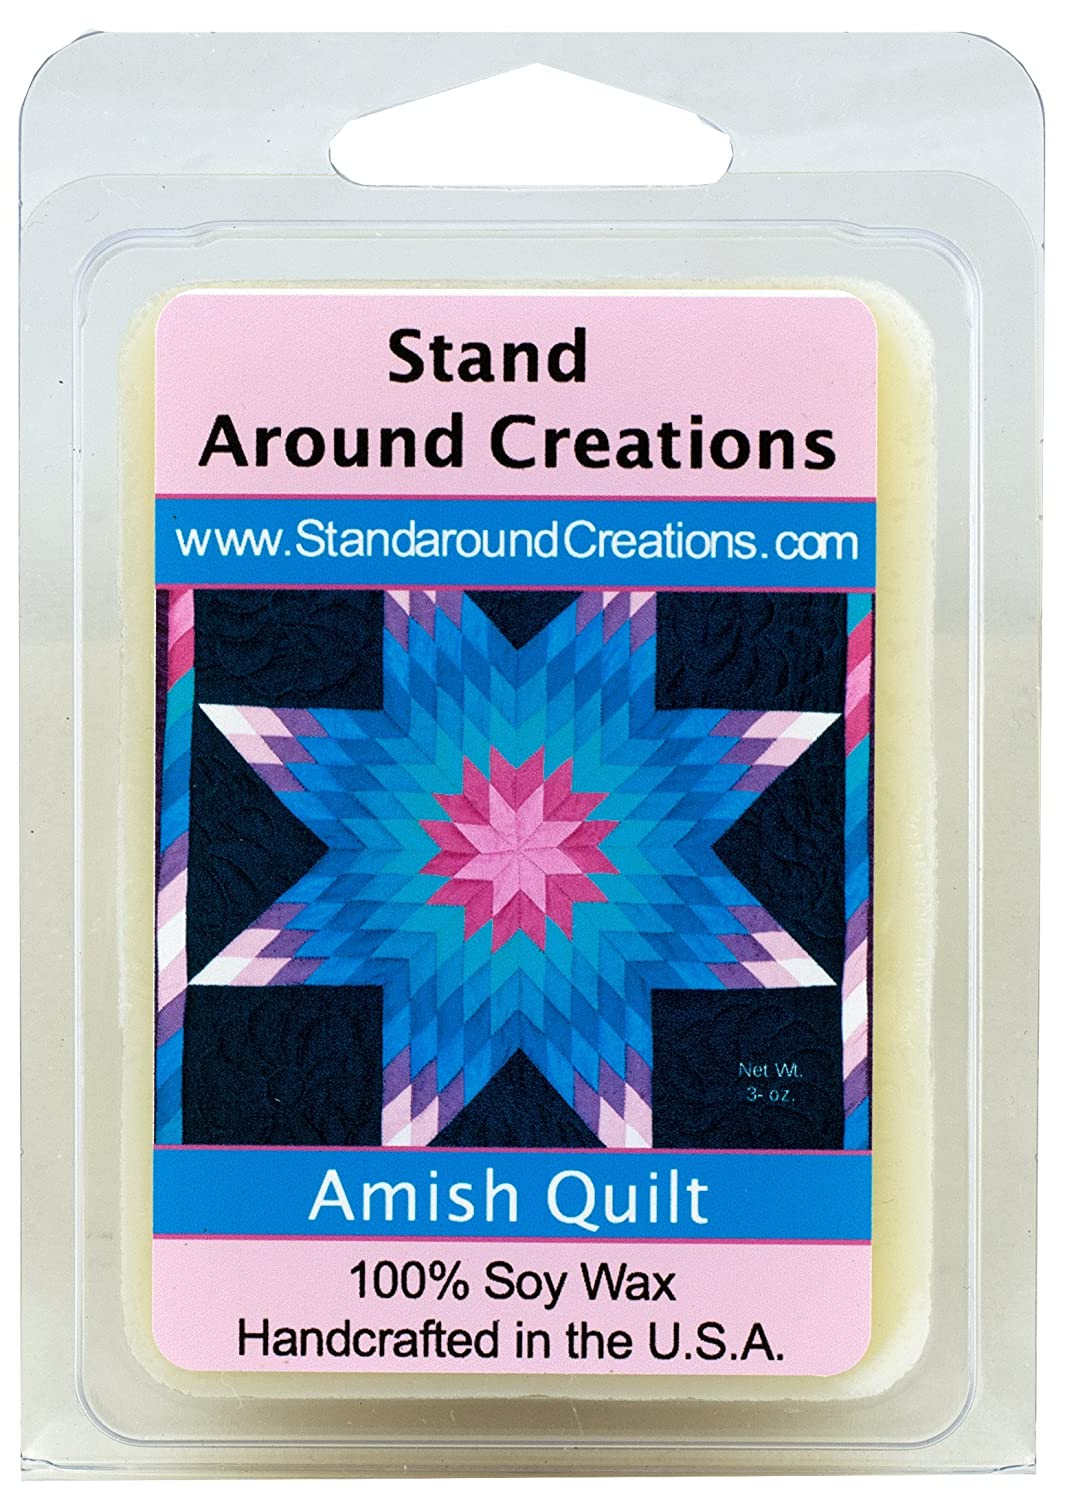 Amish Quilt Soy Wax Melt Tart- Spicy, sweet, and complex. Vanilla with a hint of cinnamon, clove, allspice and sugar. Hints of nutmeg and fruits peek out from the heart notes. 3oz - Naturally Strong Stand Around Creations